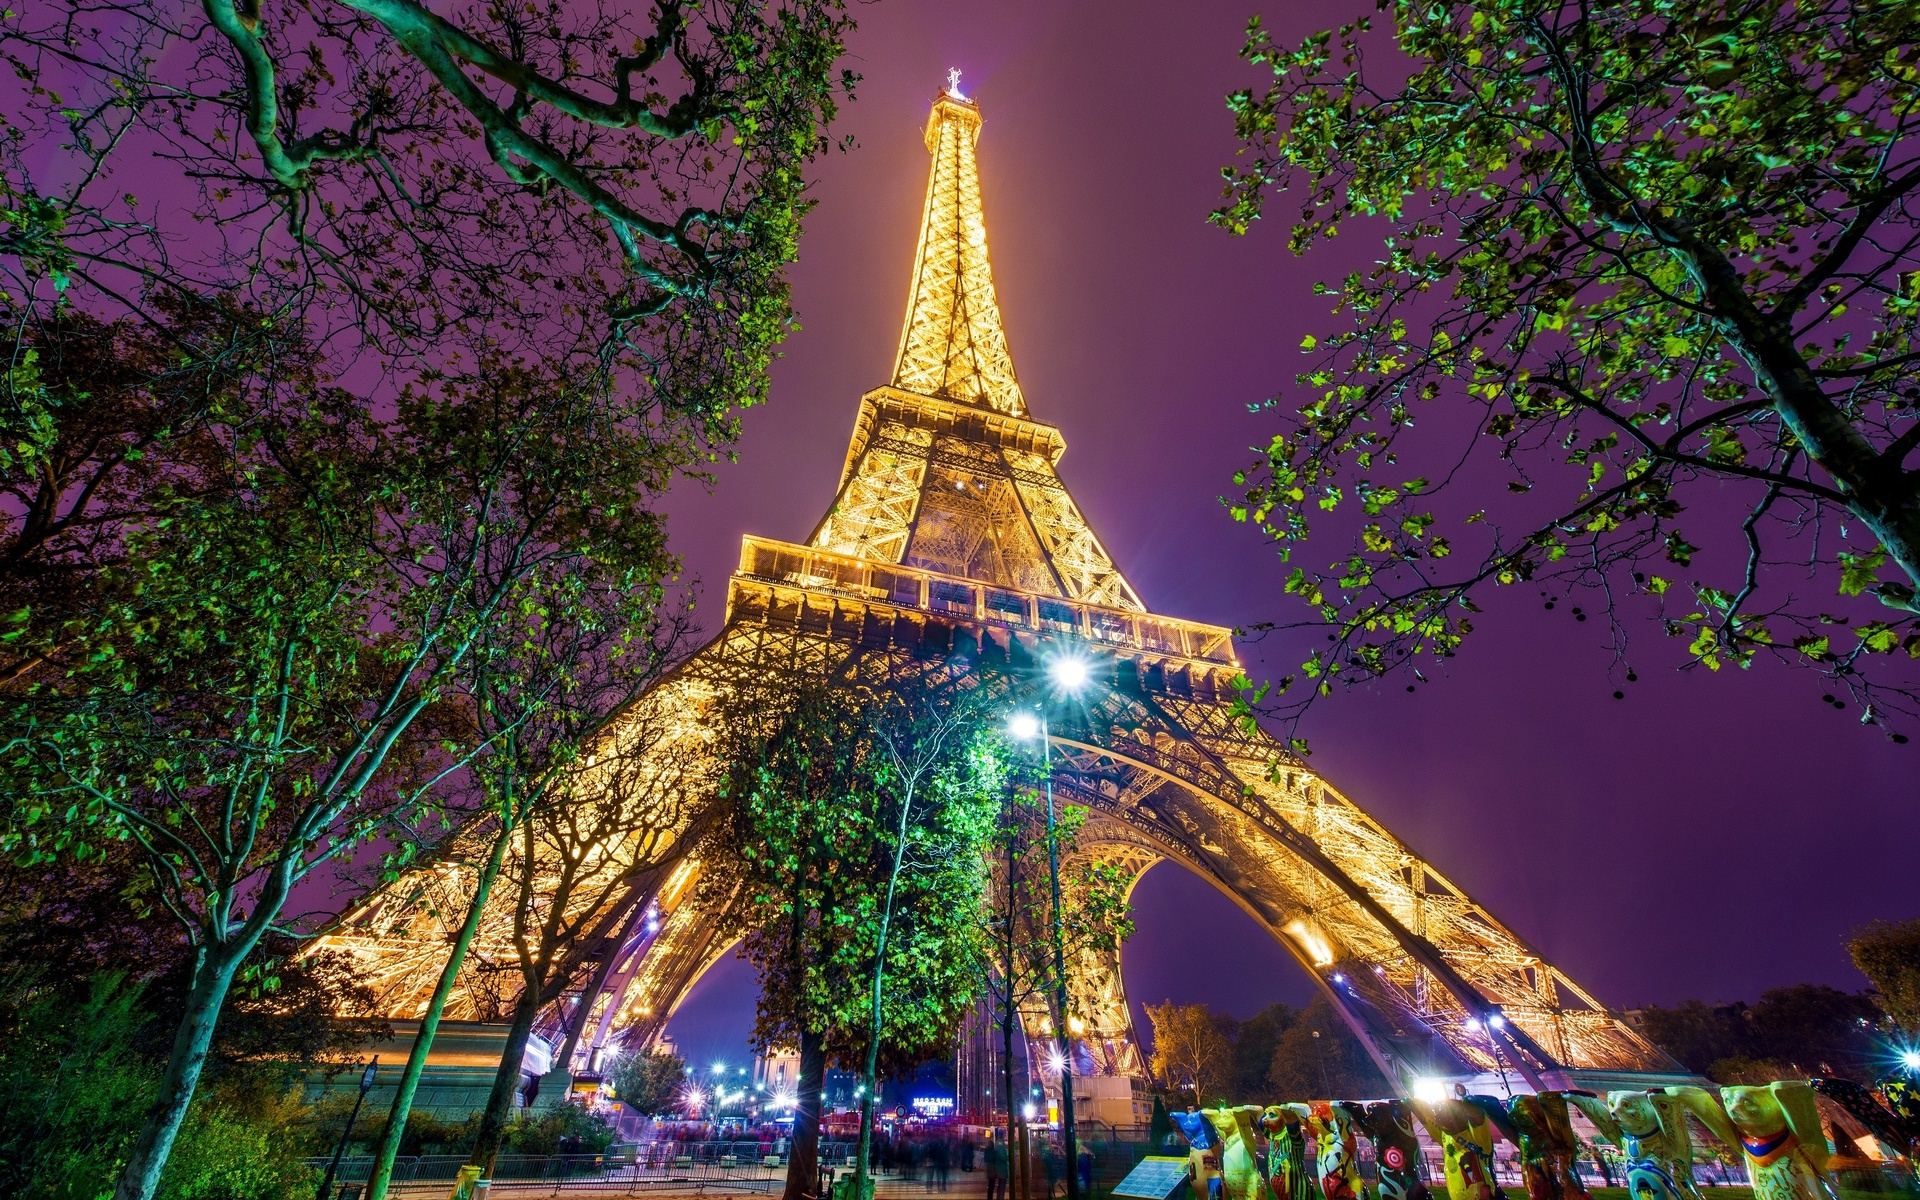 46 paris eiffel tower hd wallpaper on wallpapersafari - Paris eiffel tower desktop wallpaper ...